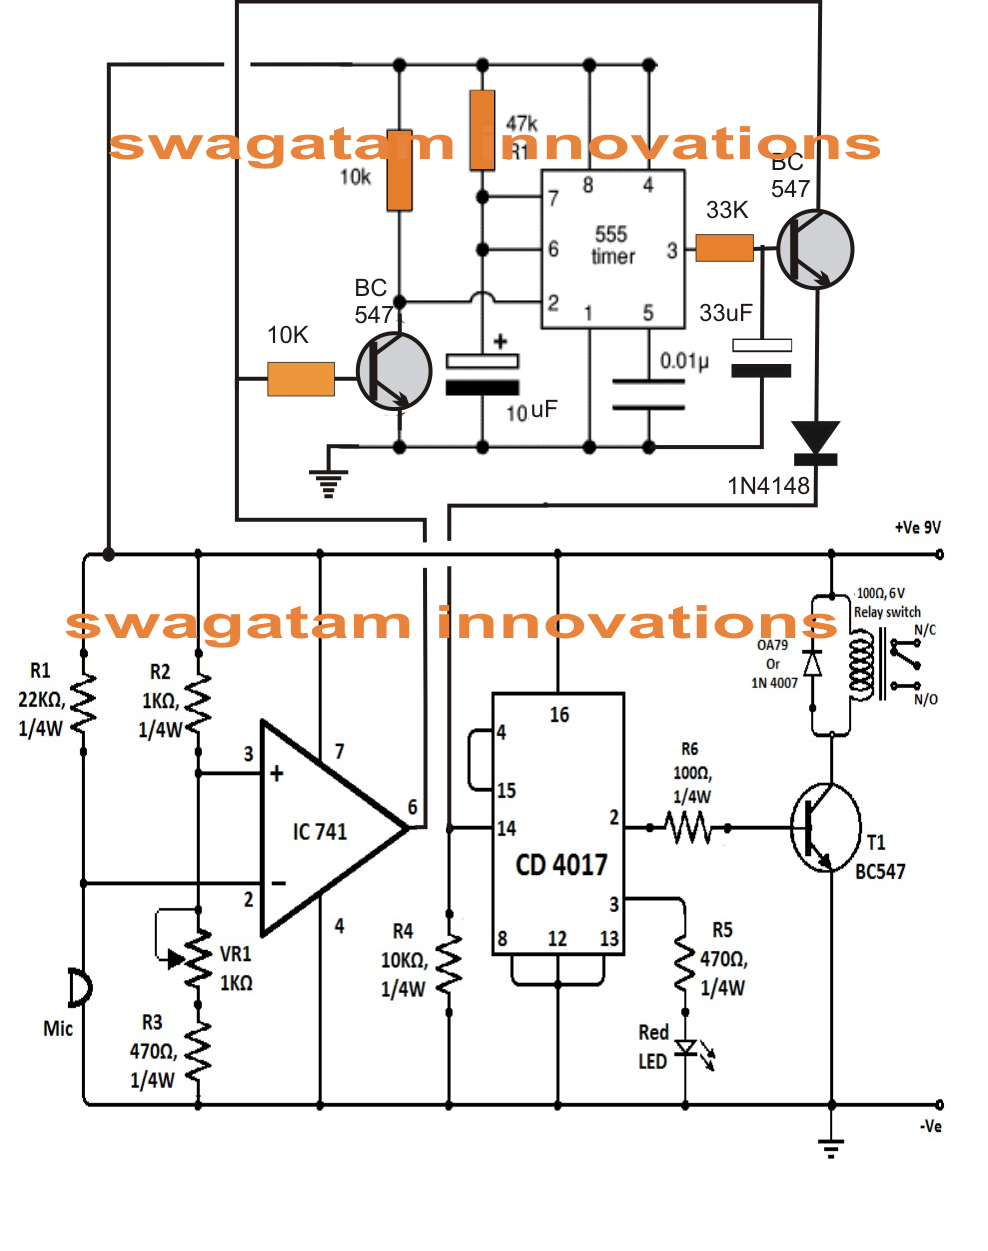 toggle switch circuit diagram the wiring diagram toggle switch circuit diagram vidim wiring diagram circuit diagram